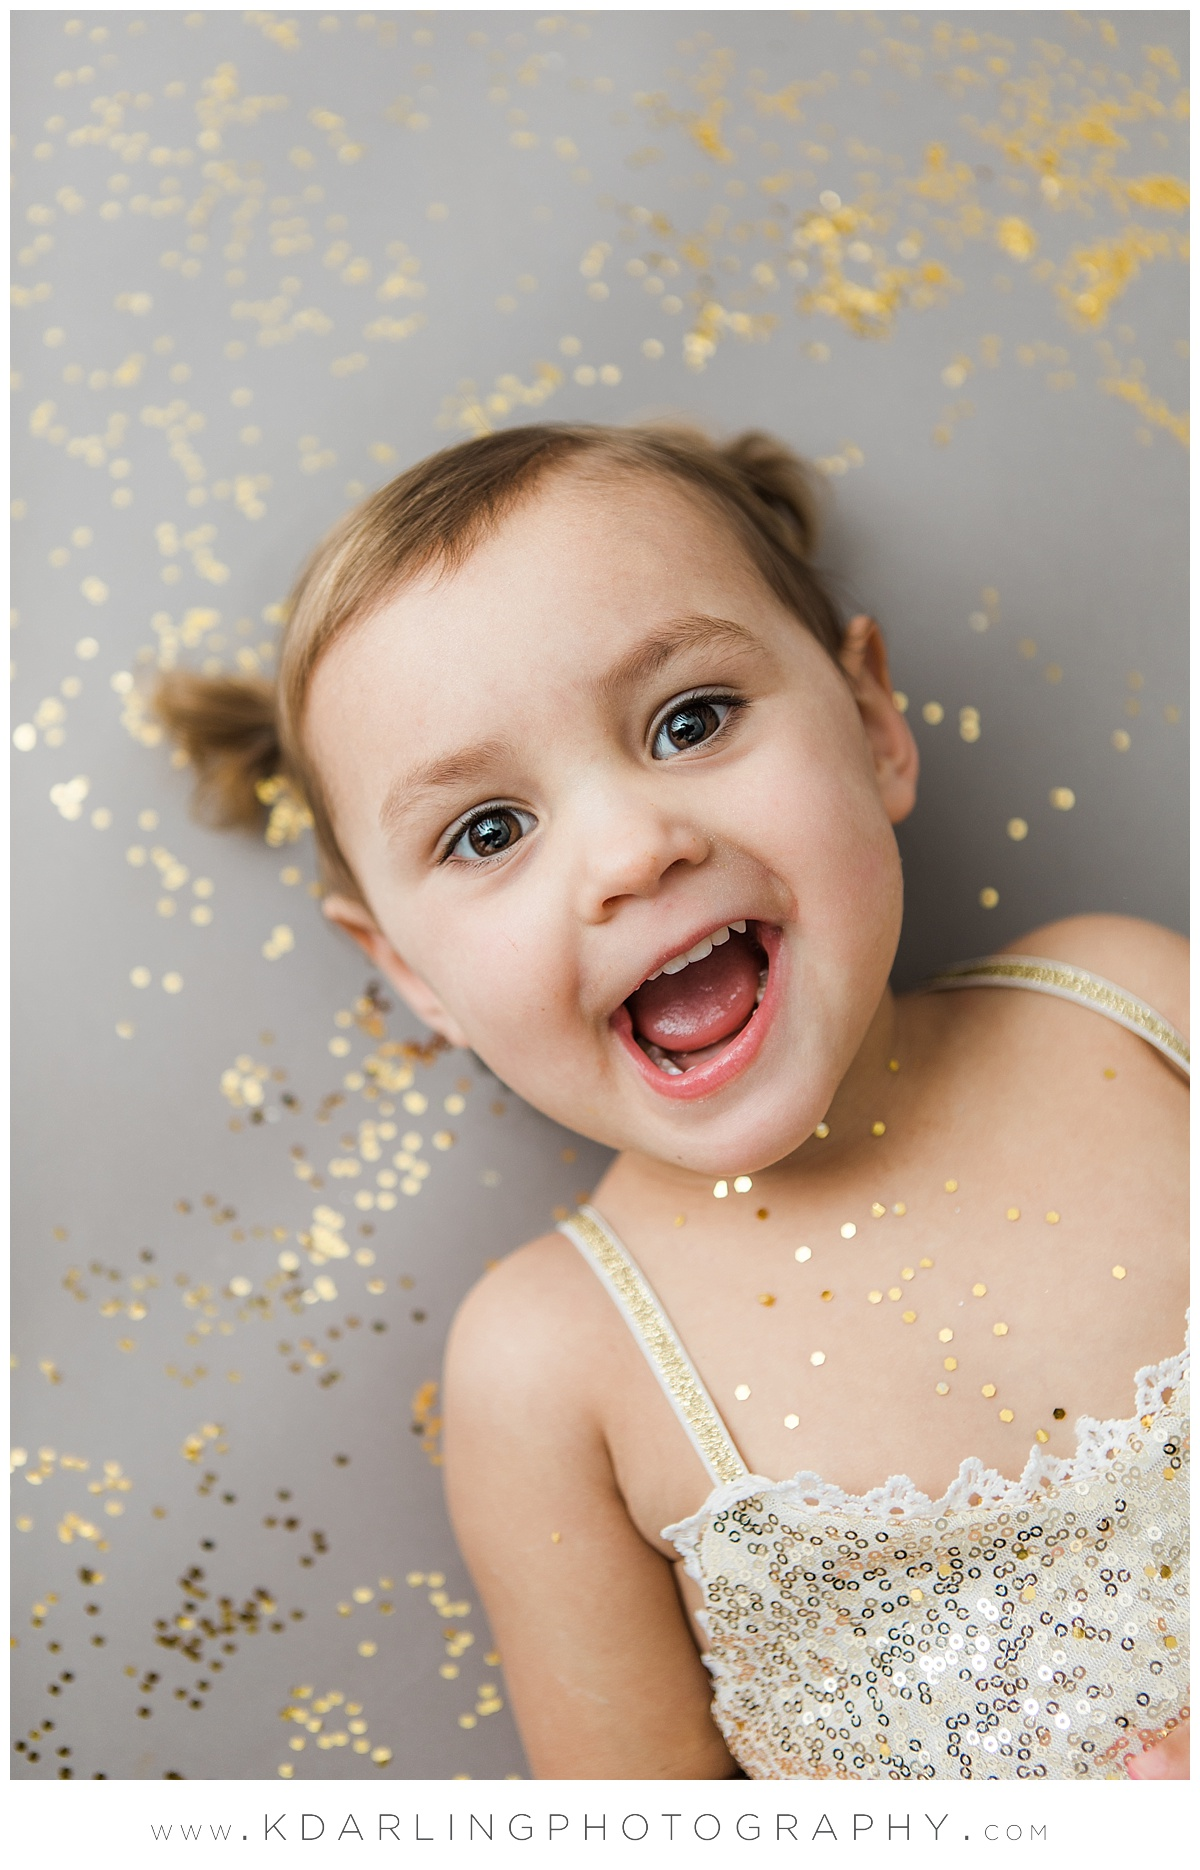 Two year old girl laying in glitter